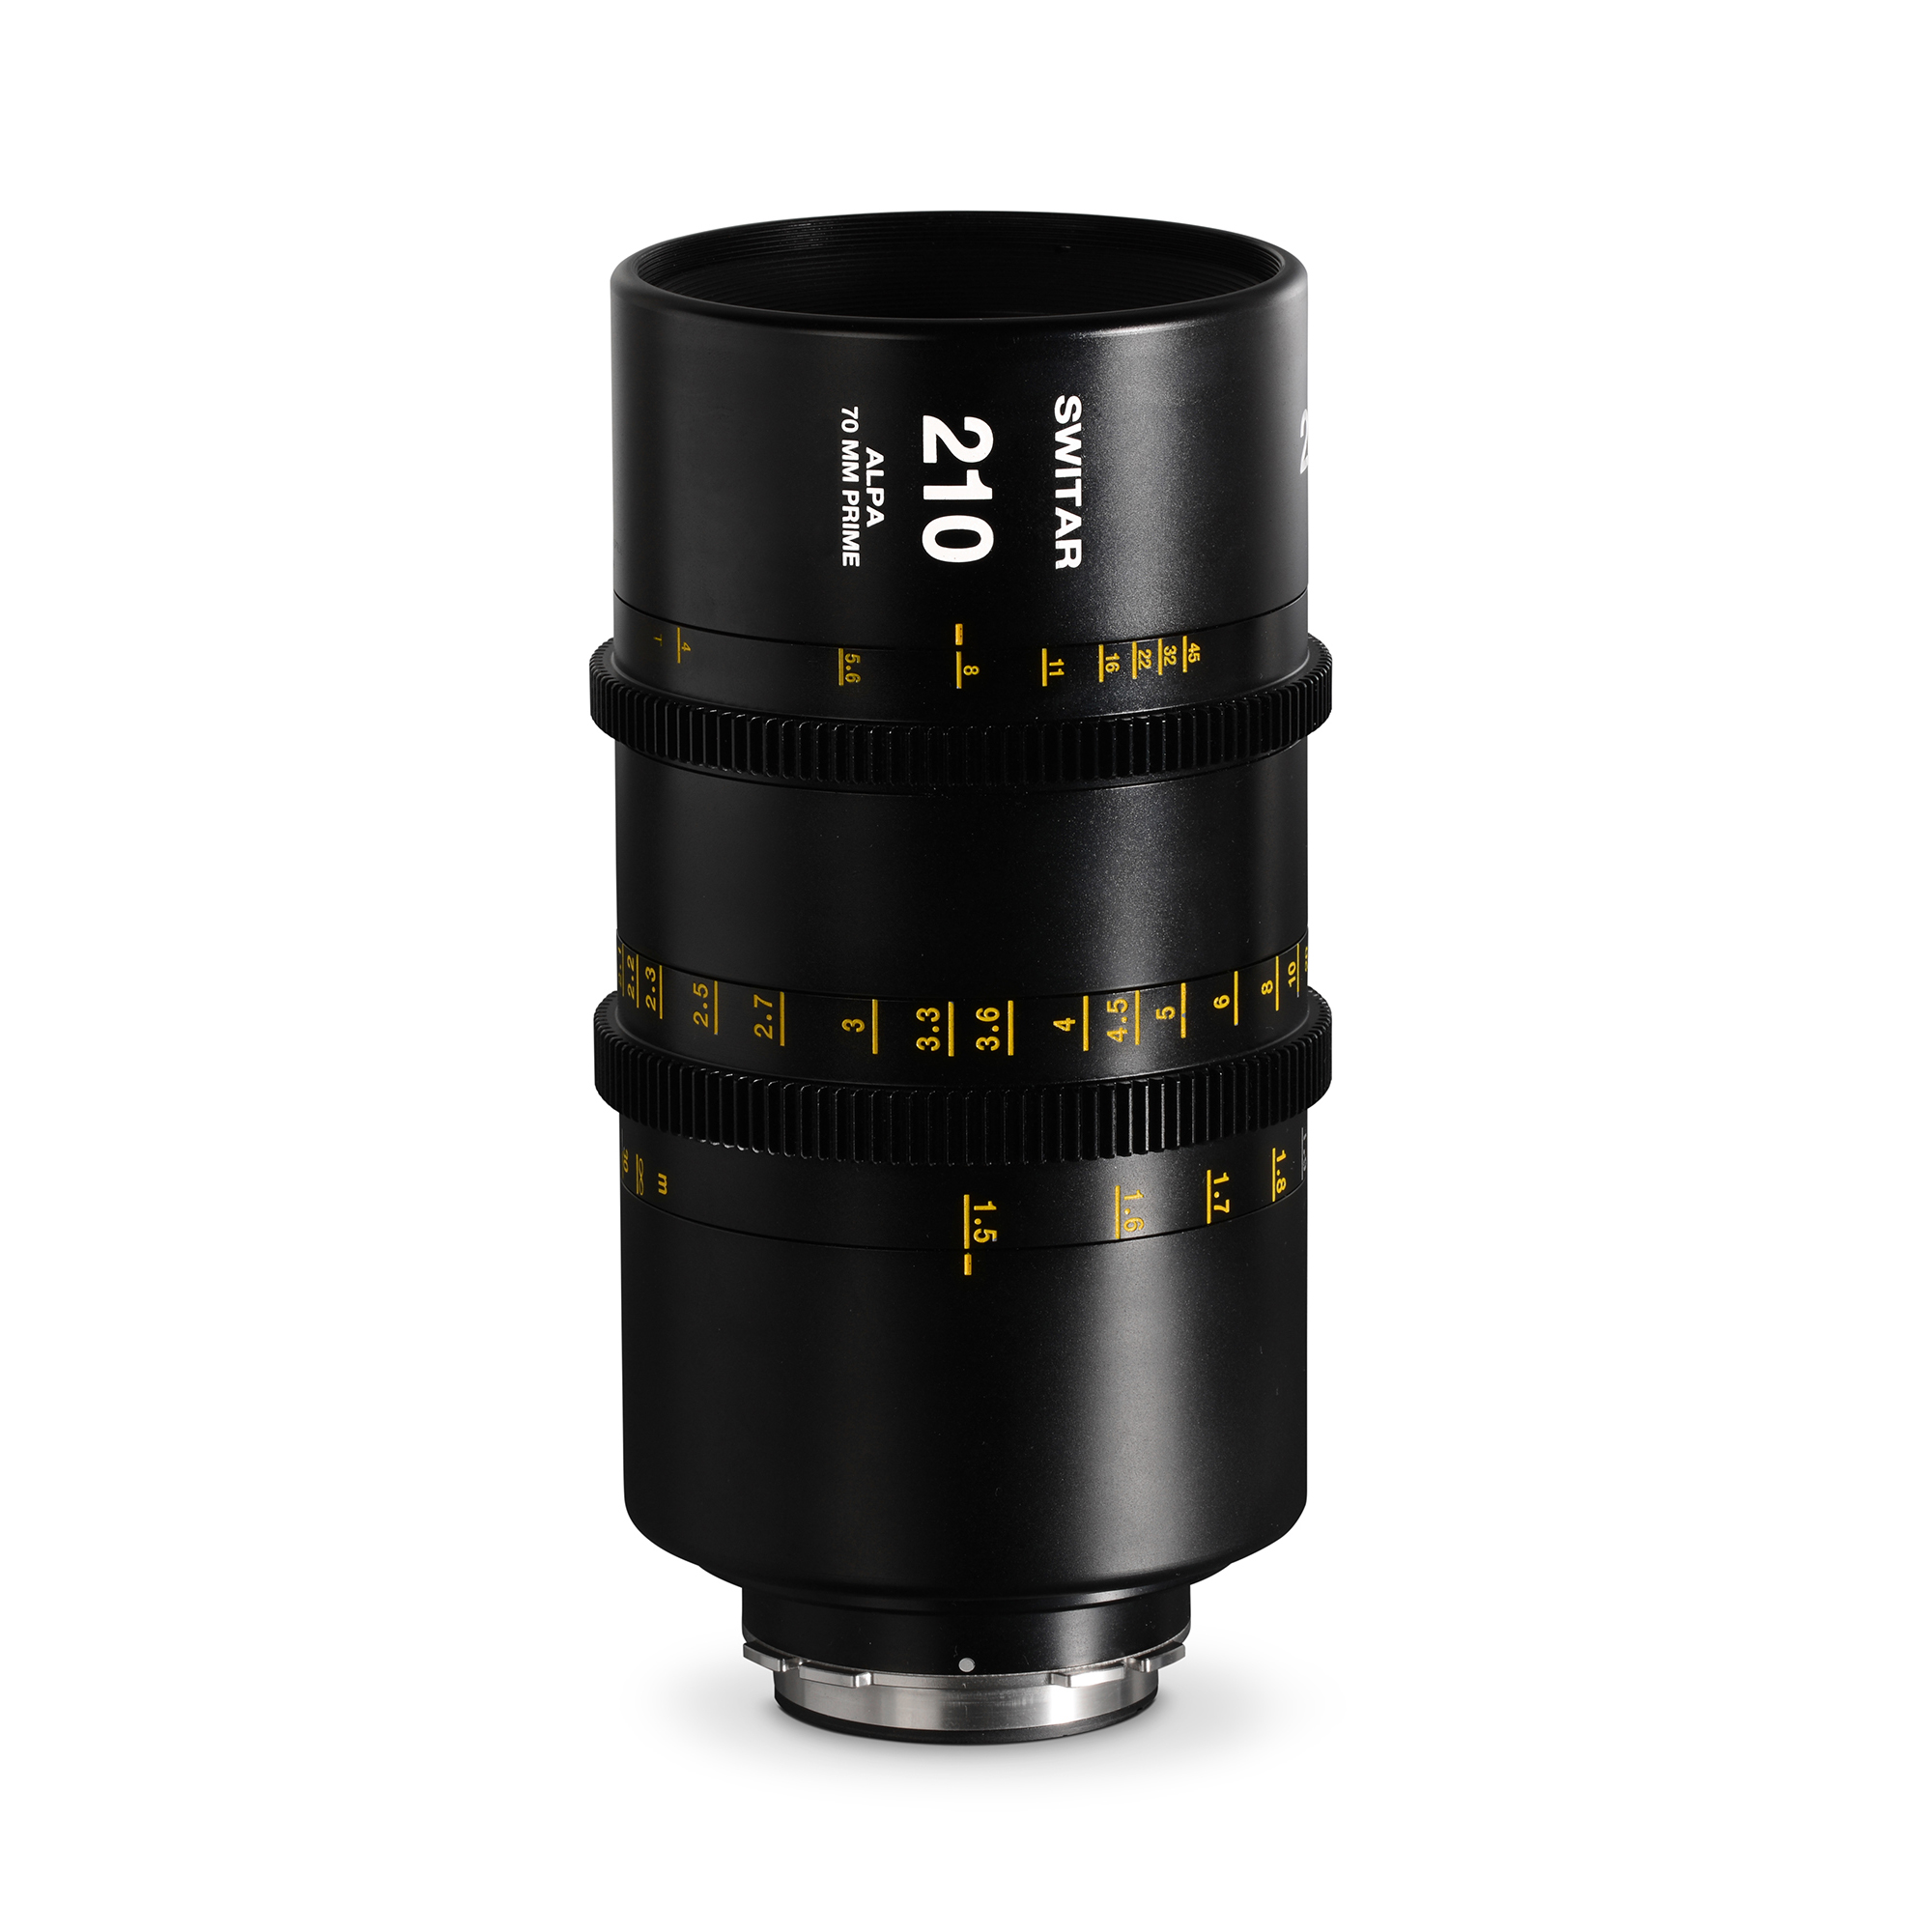 ALPA Switar 4.0/210 mm Cine Prime IC 70 mm - meters